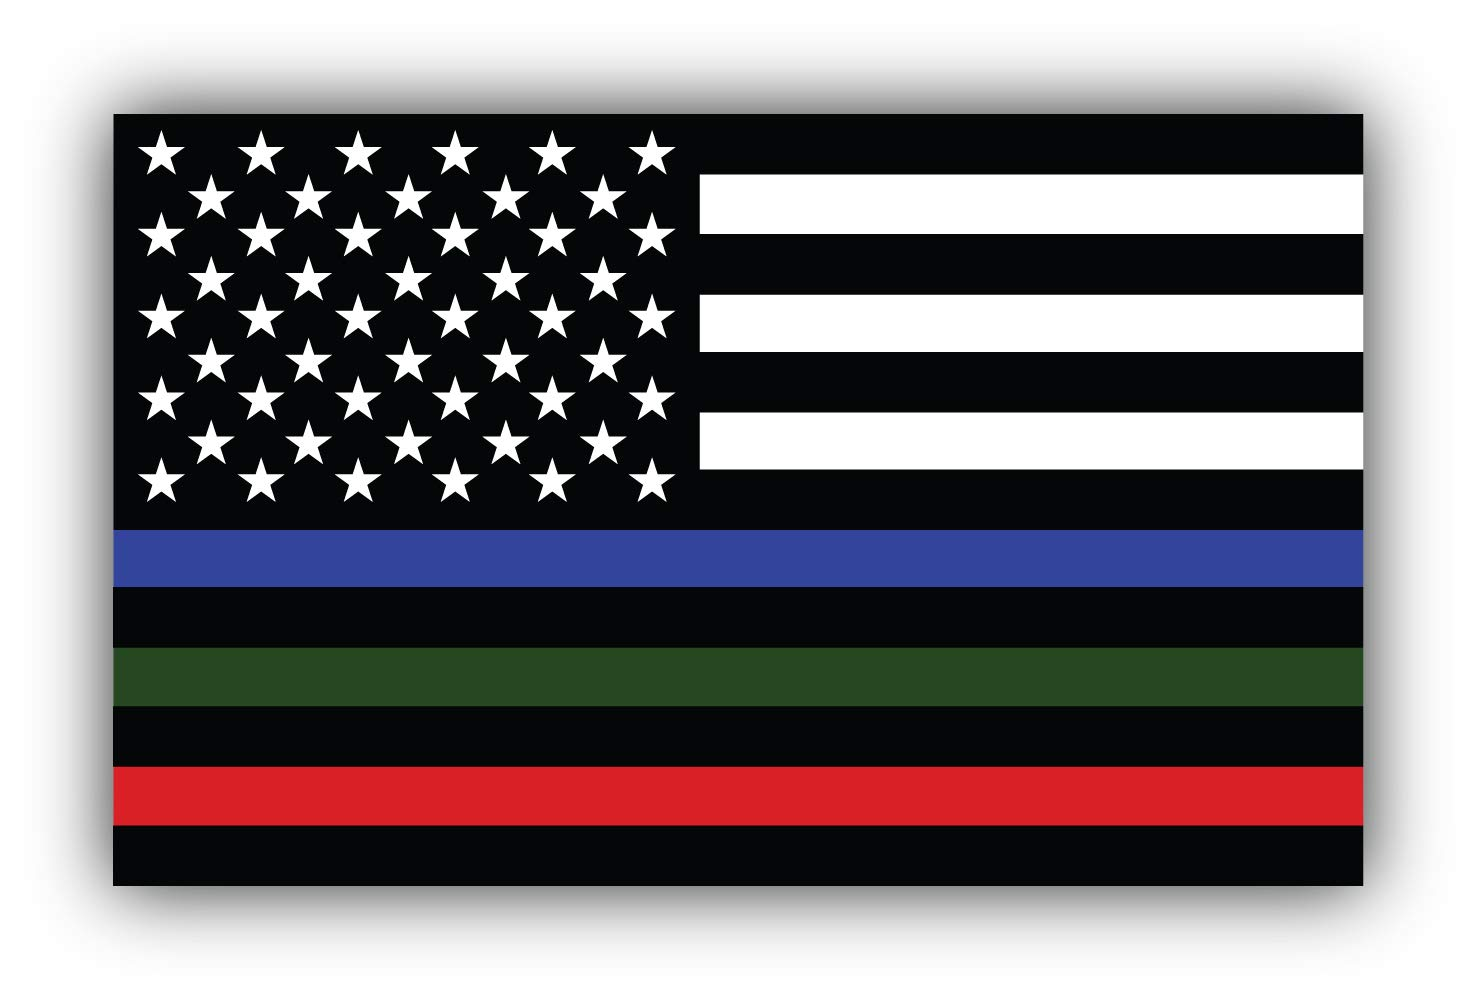 Zirni Thin Line Blue Green and Red Reflective Stripe American Flag Support Police Military and Fire Officers Vinyl Sticker Bumper Art Decal